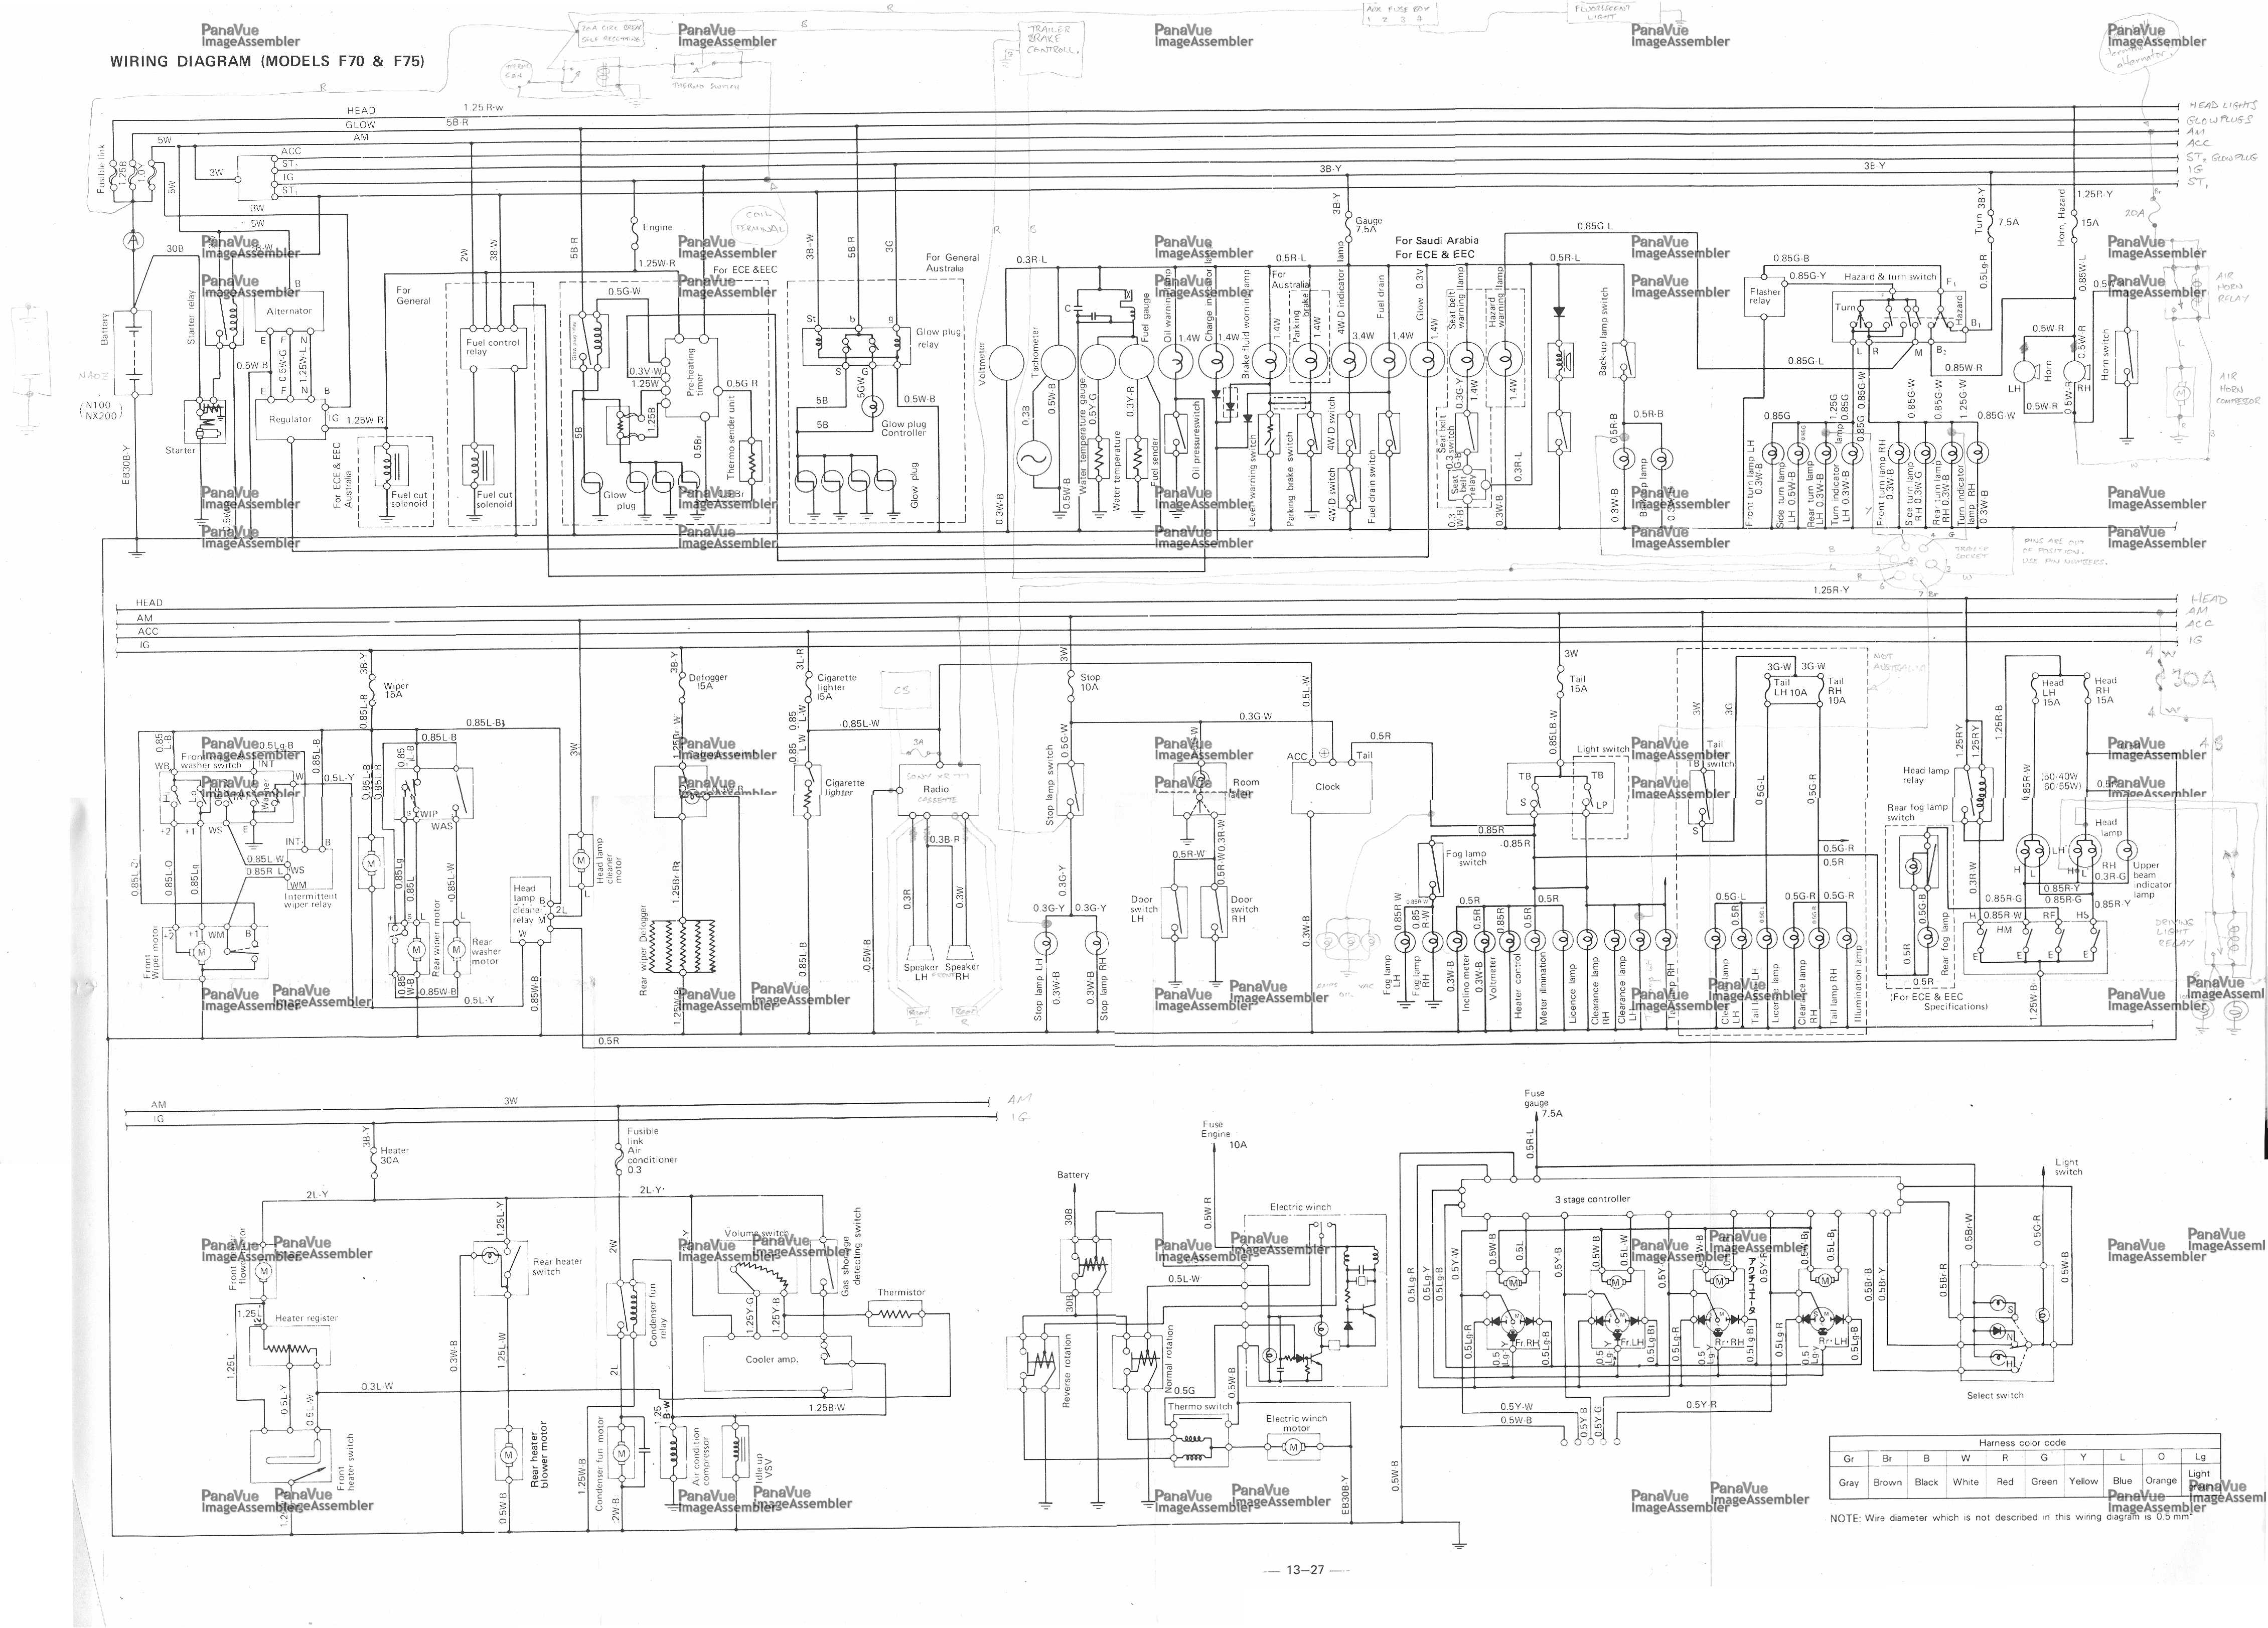 medium resolution of image of 1978 chevy truck wiring diagram pdf 77 c10 wiring diagram 1953 dodge wiring diagram